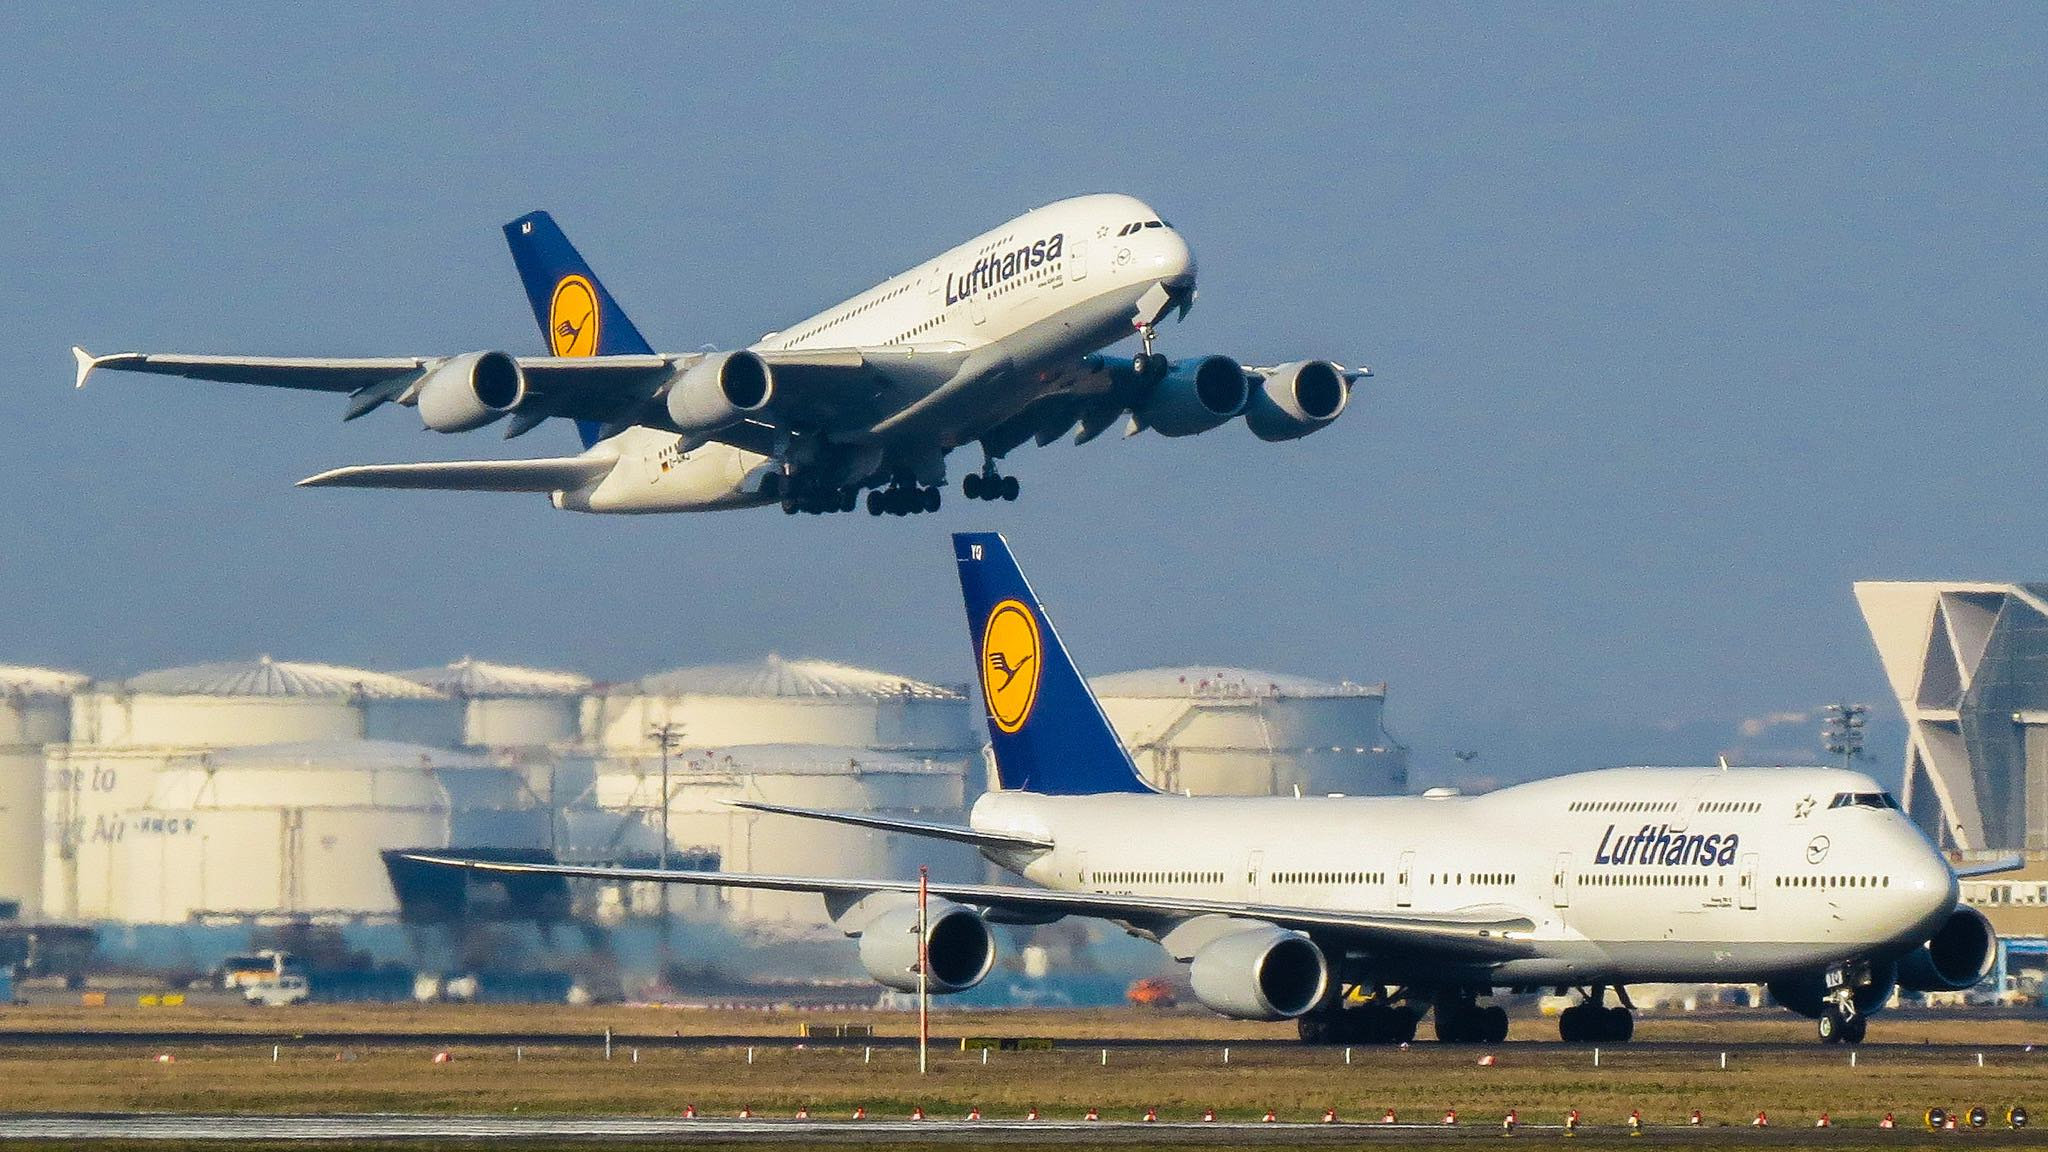 Lufthansa Airbus A380 and Boeing 747